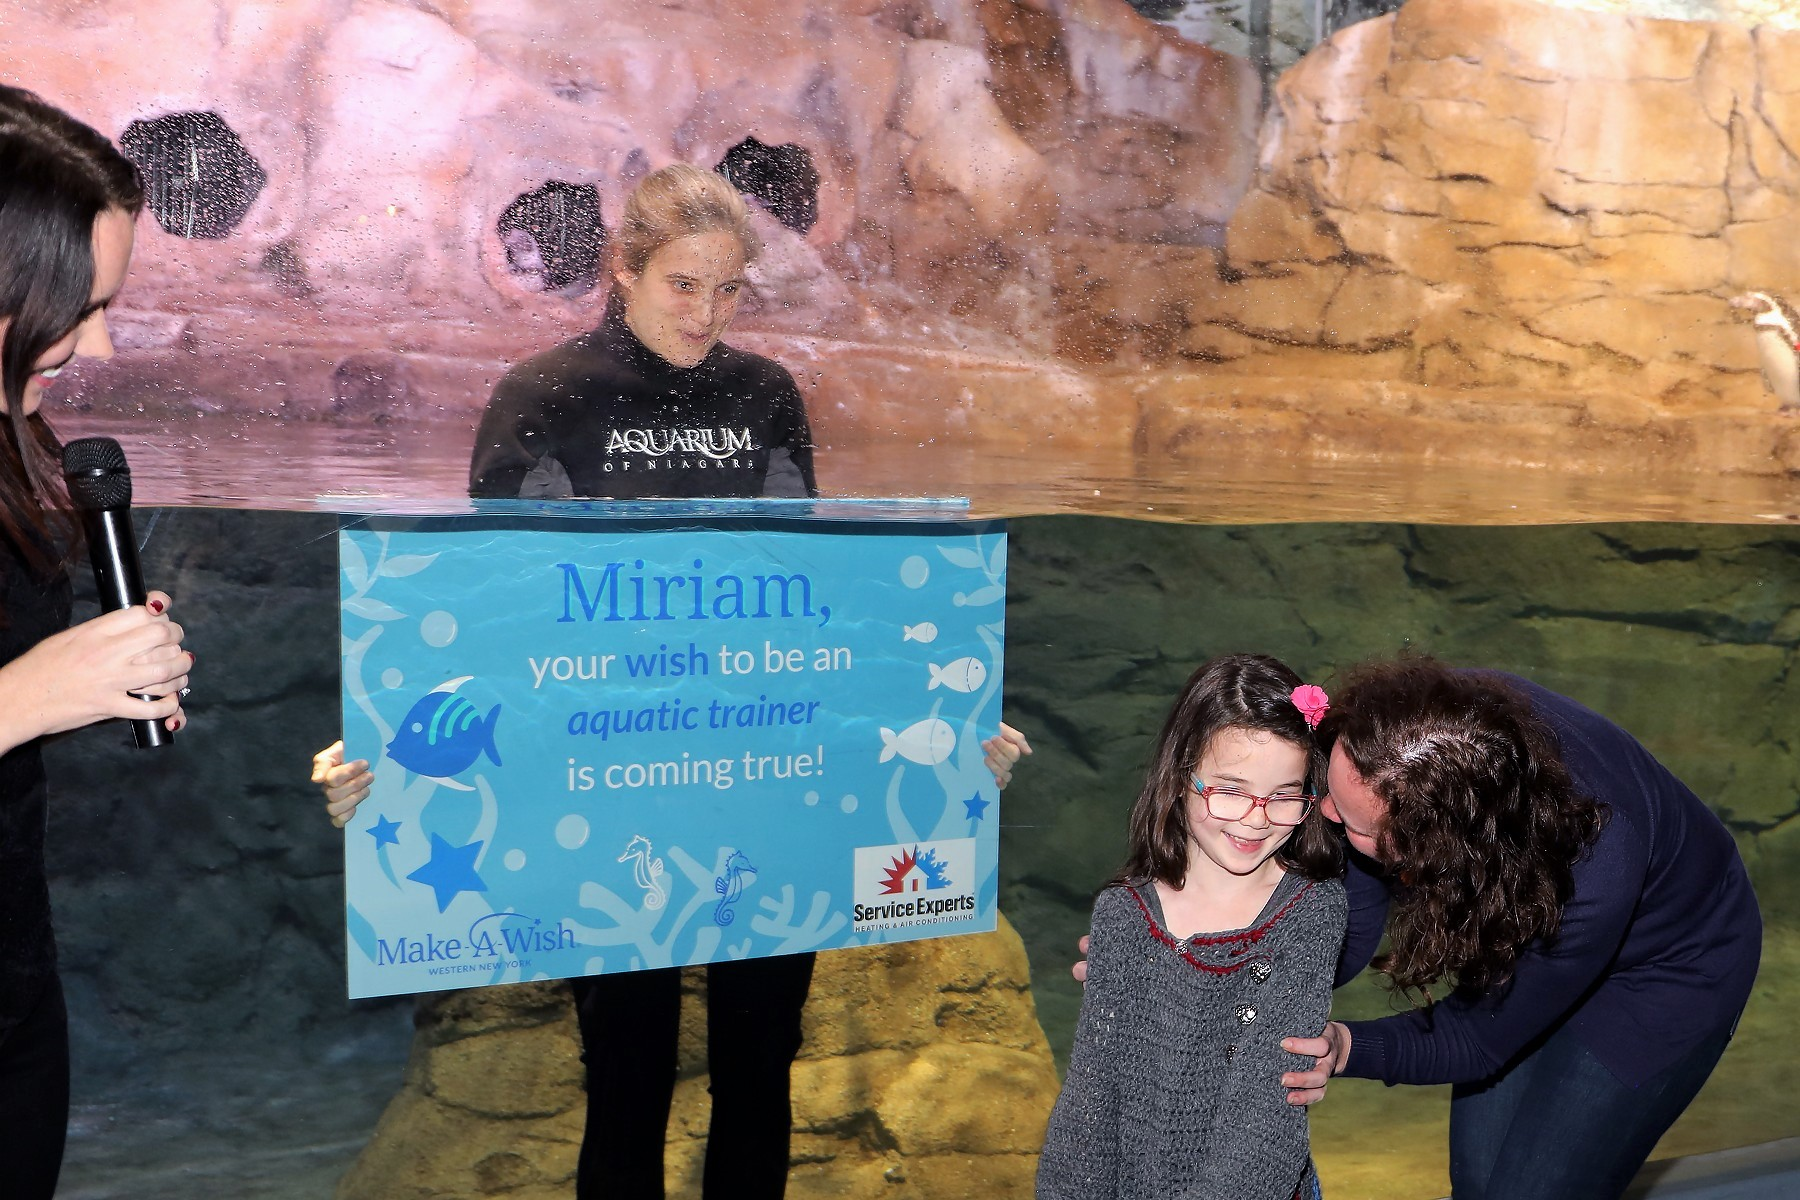 Make-A-Wish surprises young cancer survivor with trip to Florida to be an aquatic trainer!